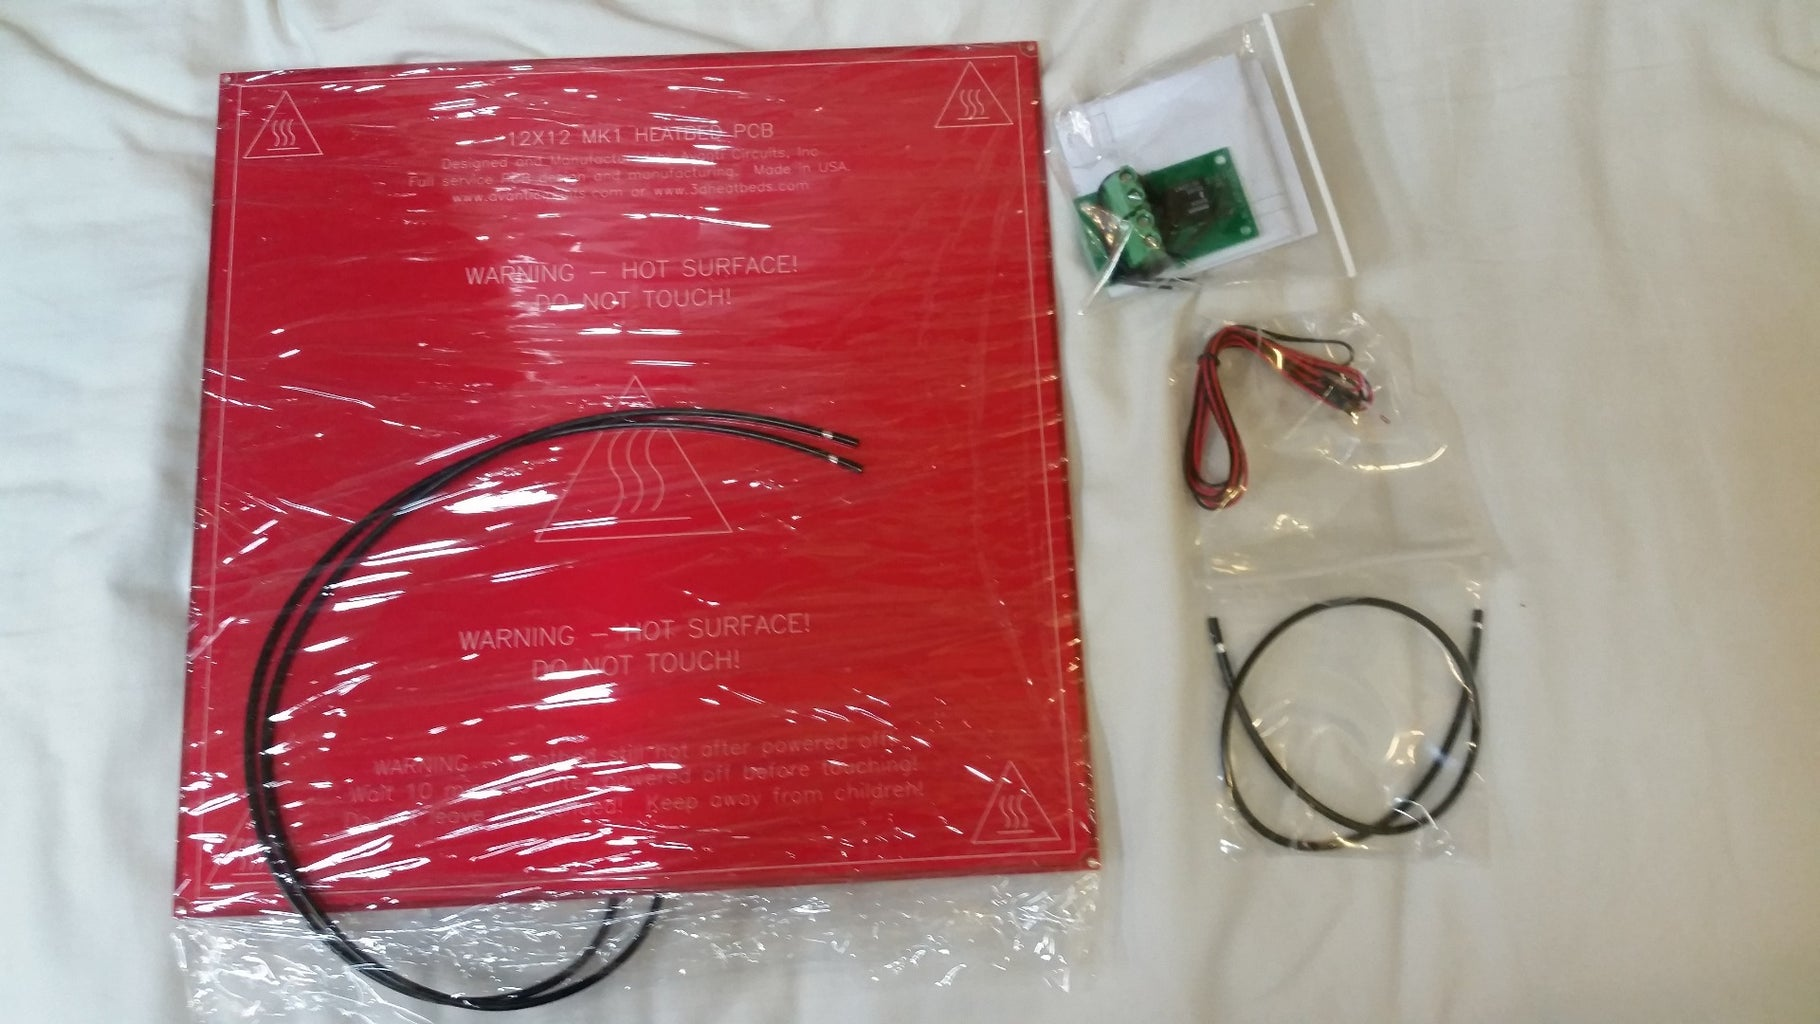 LCD Assembly, Ramps 1.4, and Endstops, Misc. Electronics